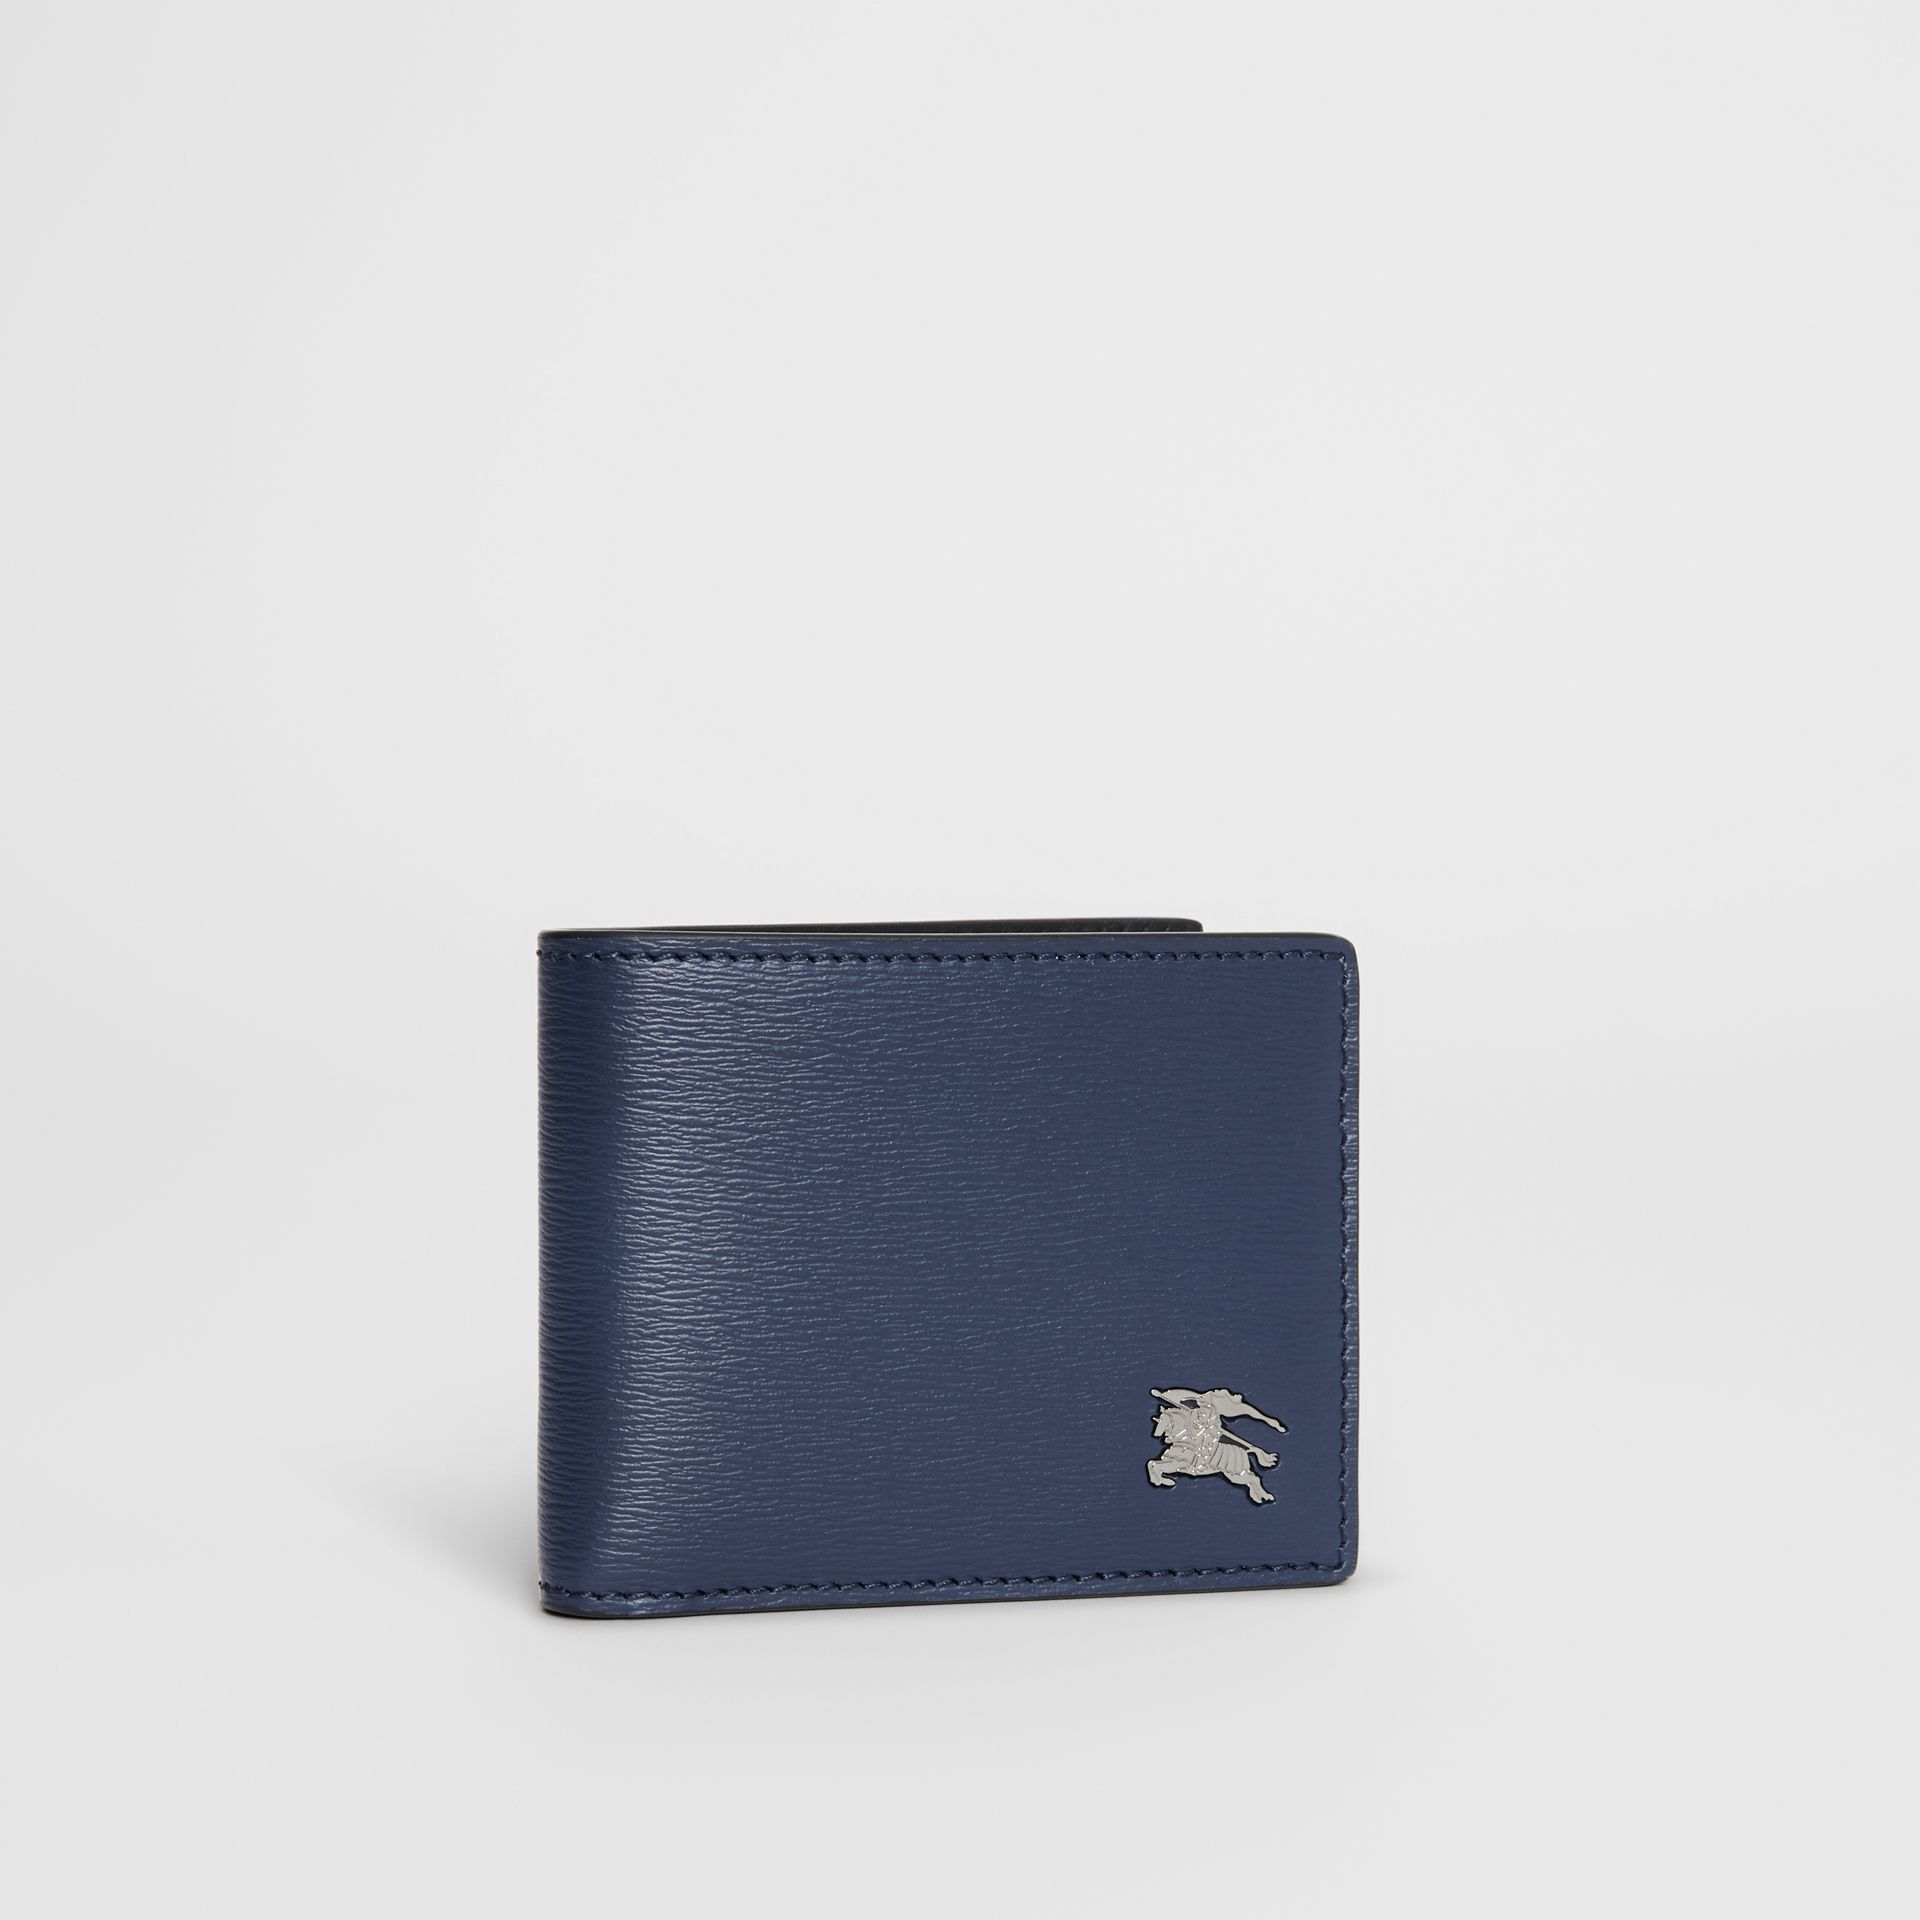 London Leather Bifold Wallet in Navy - Men | Burberry Canada - gallery image 3